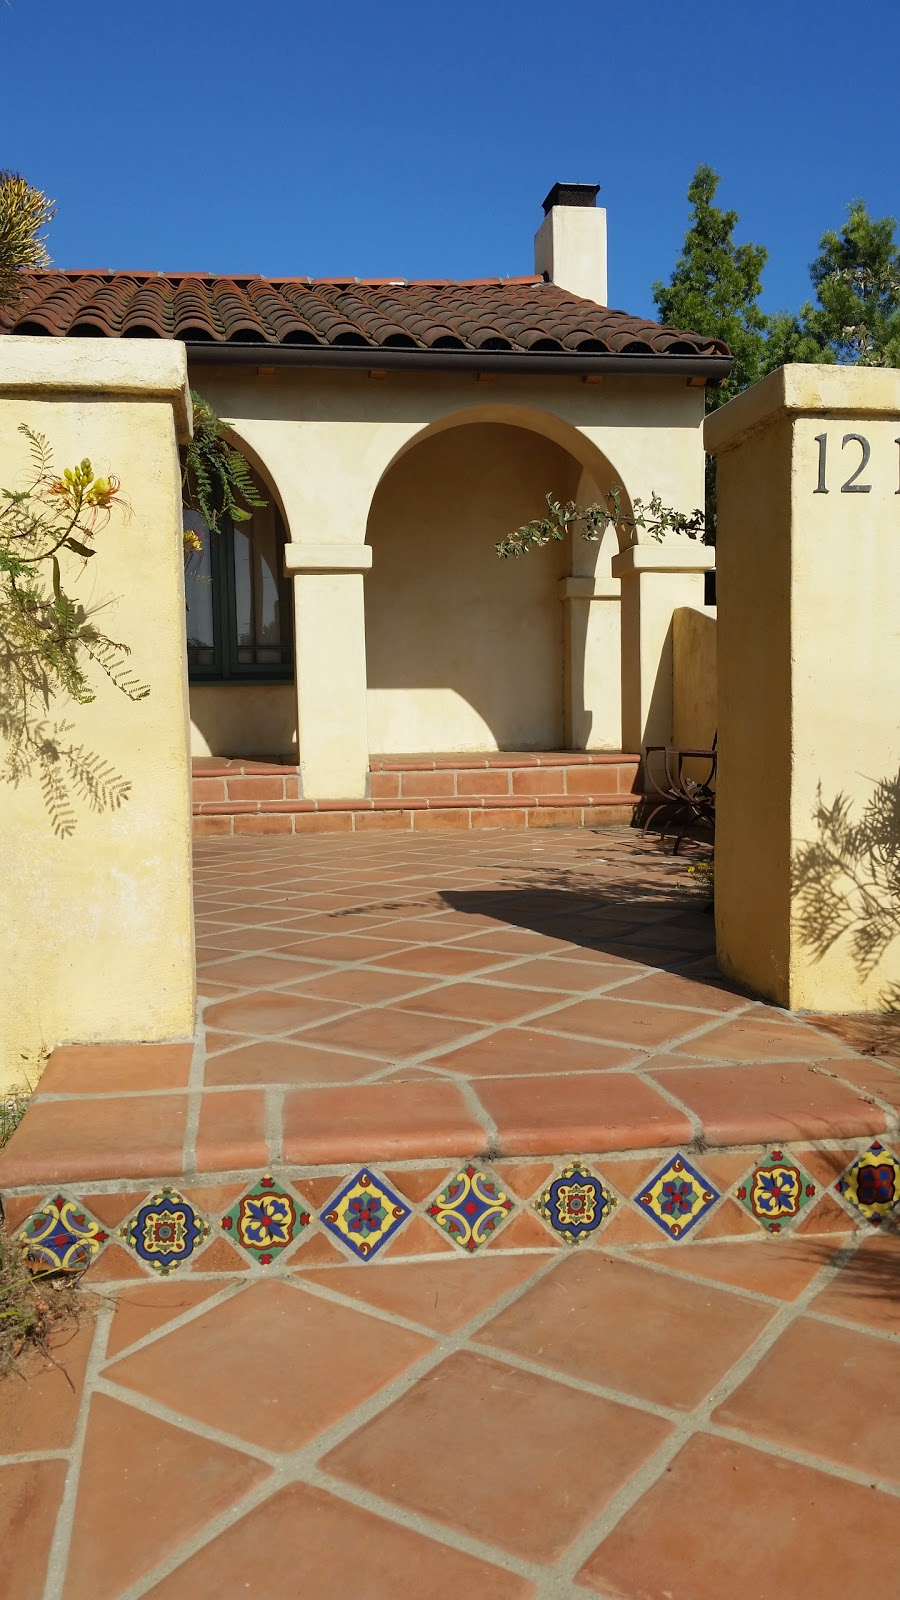 Both pavers and decorative riser tiles are on point in this open courtyard.